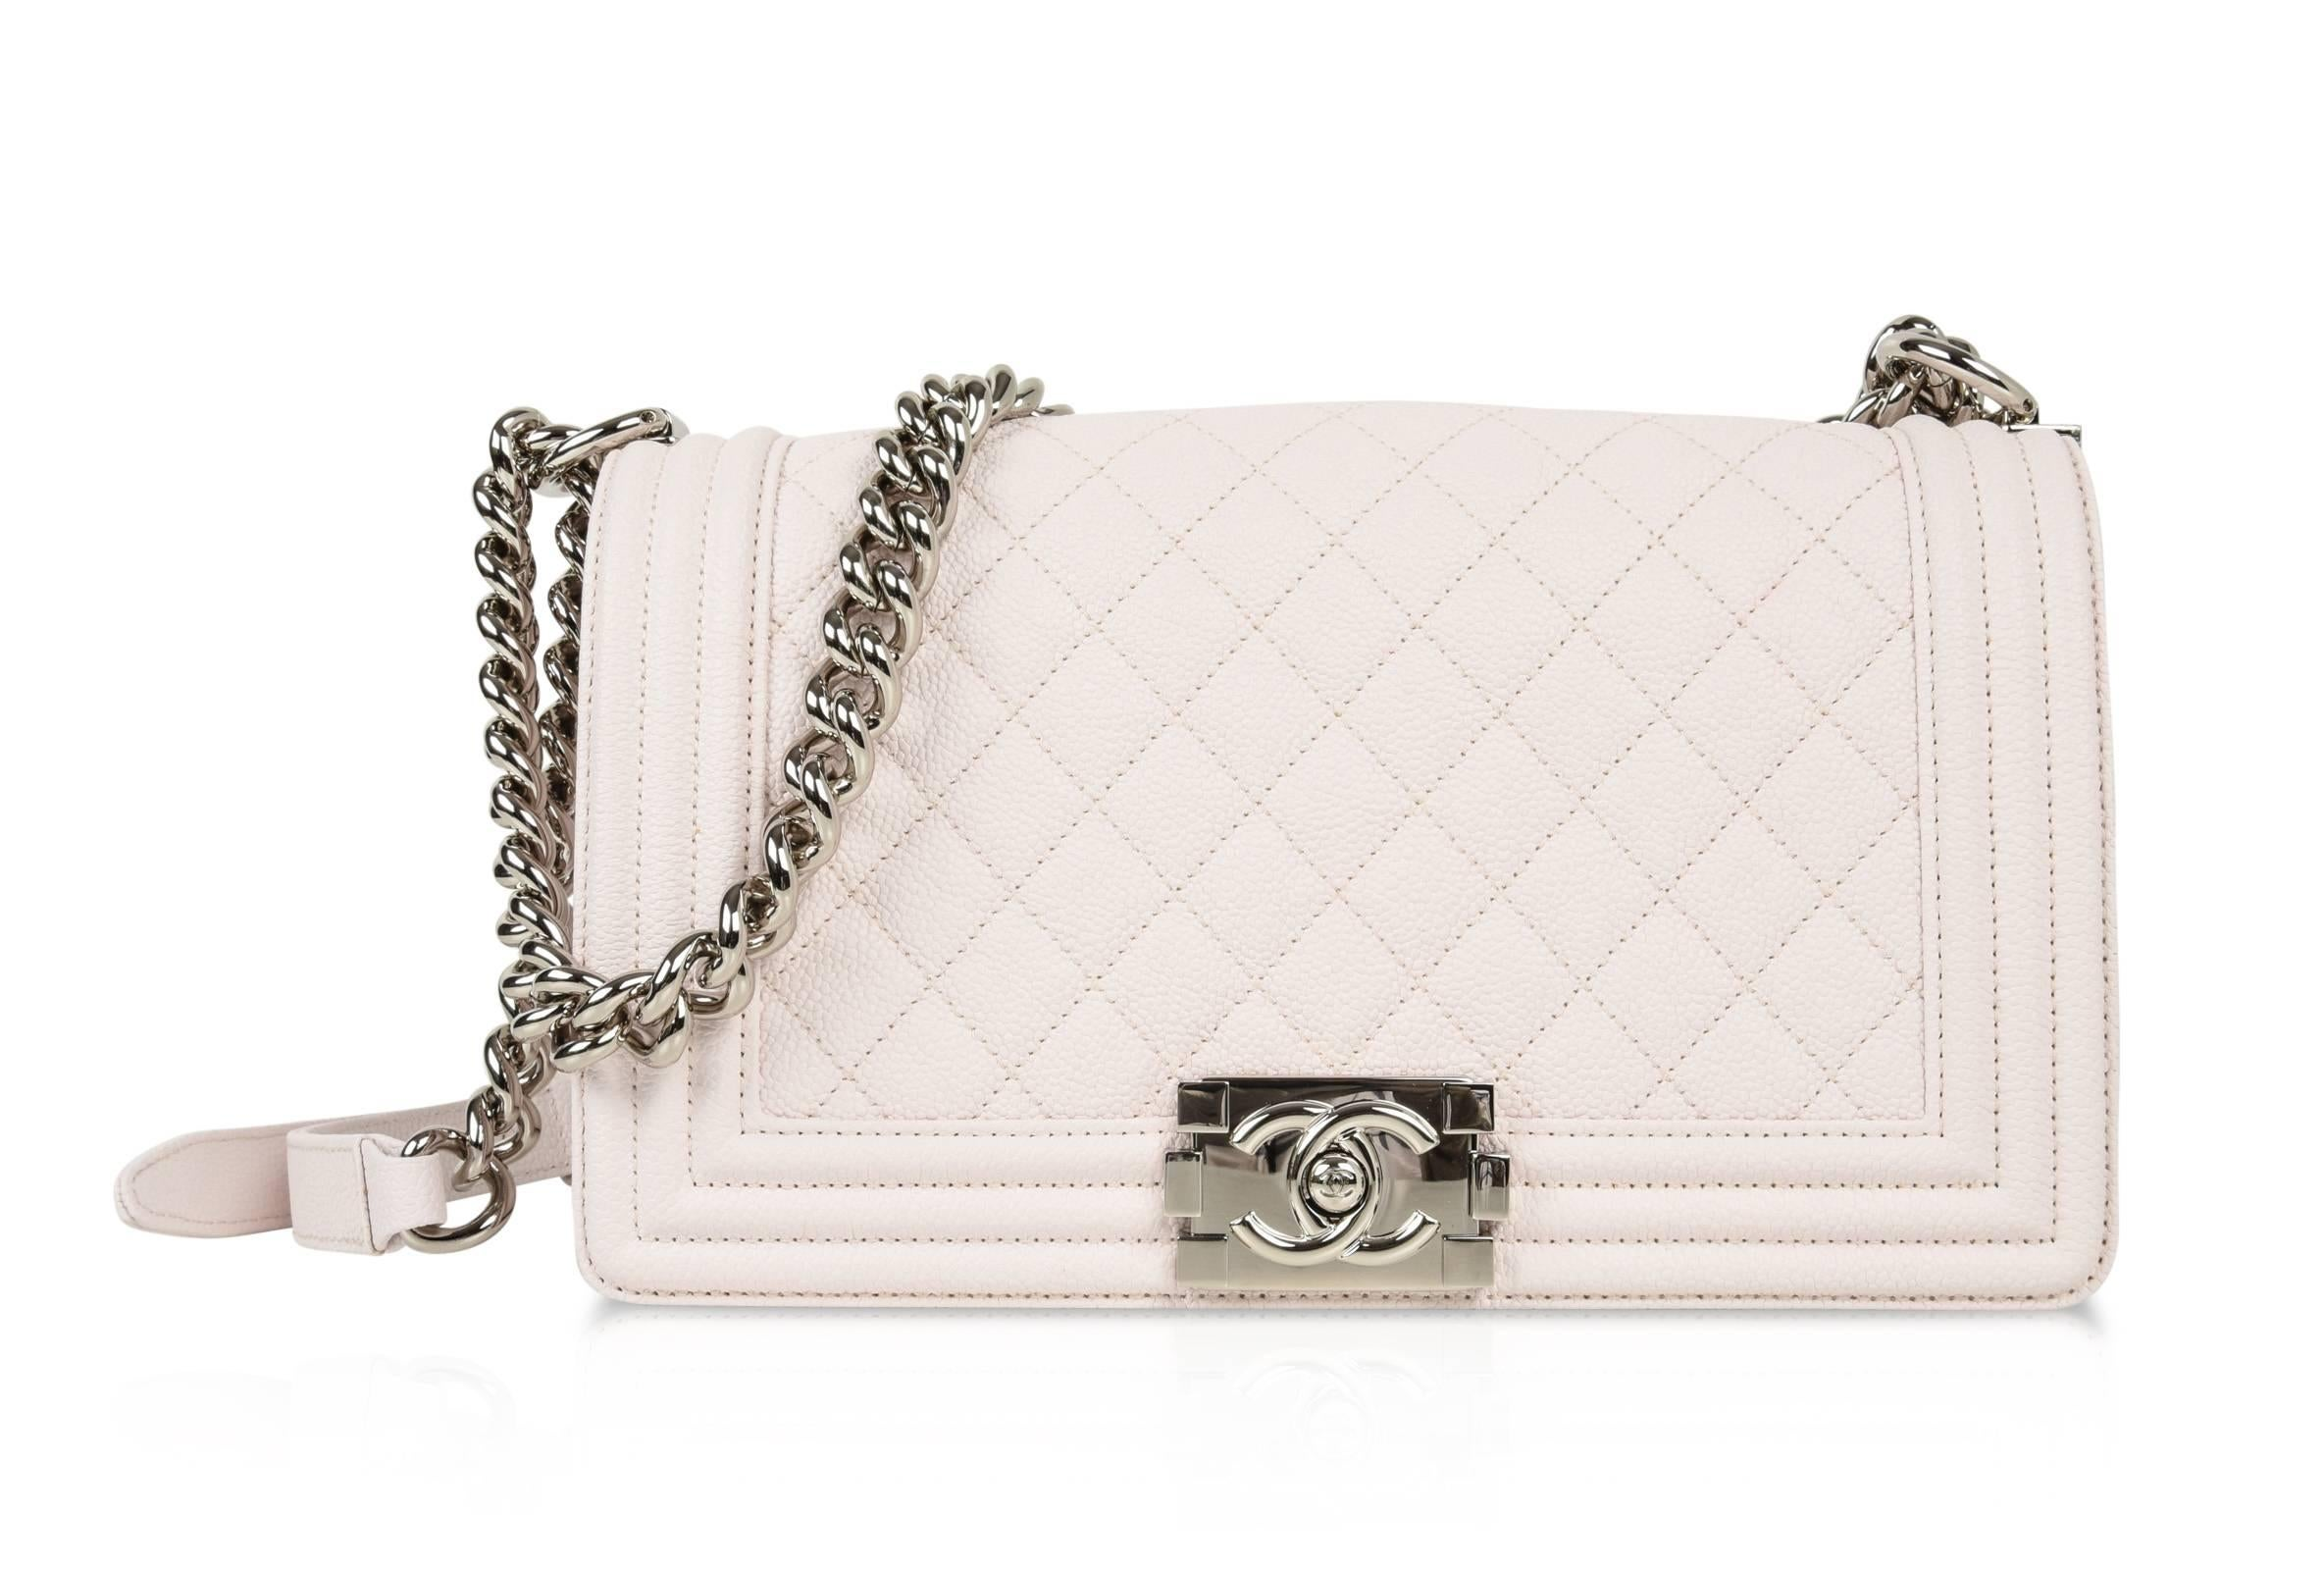 Chanel Bag White Quilted Caviar Medium